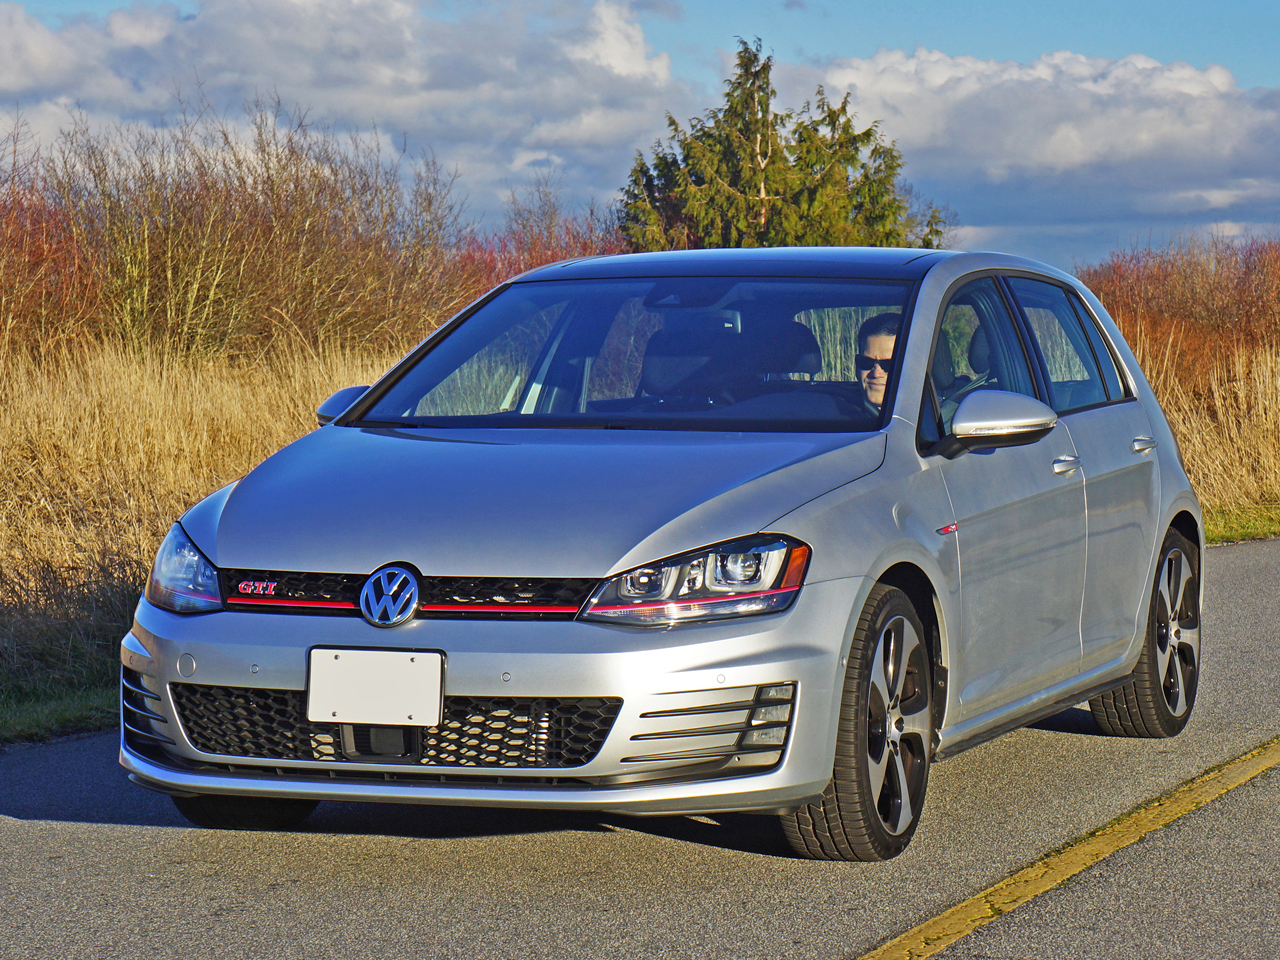 2016 Volkswagen Golf Gti Performance Dsg Road Test Review